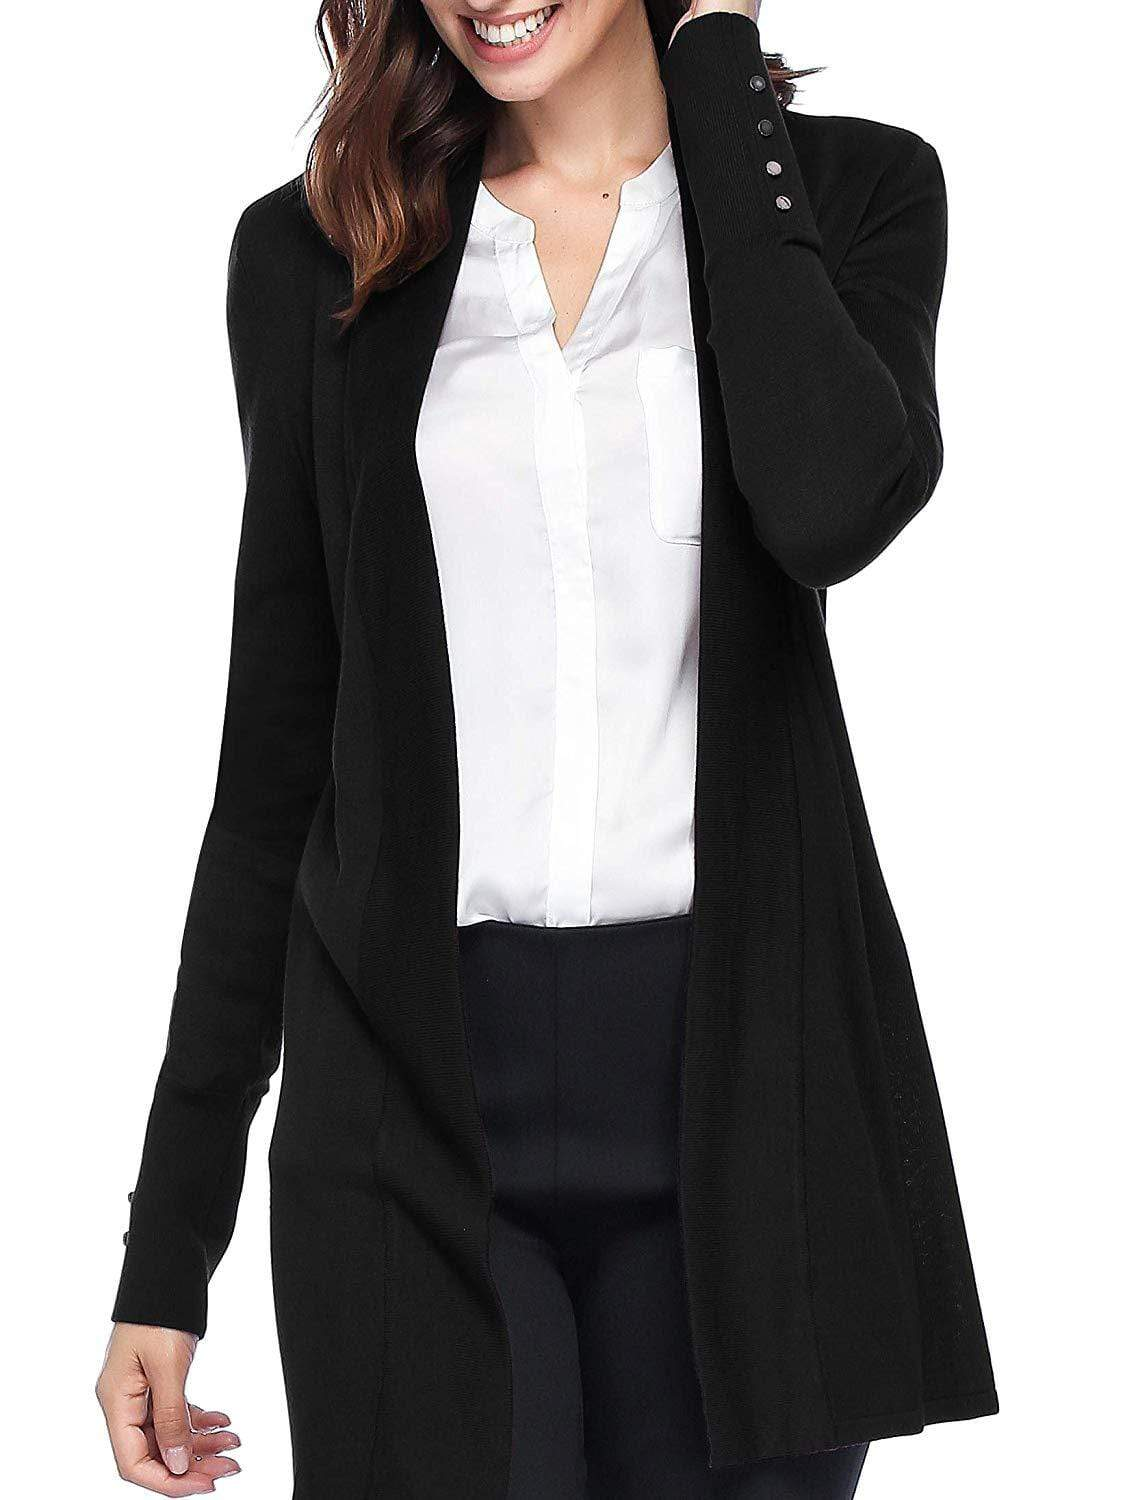 Women Lightweight Cover-up Long Sleeve Cardigan Sweaters Outerwear